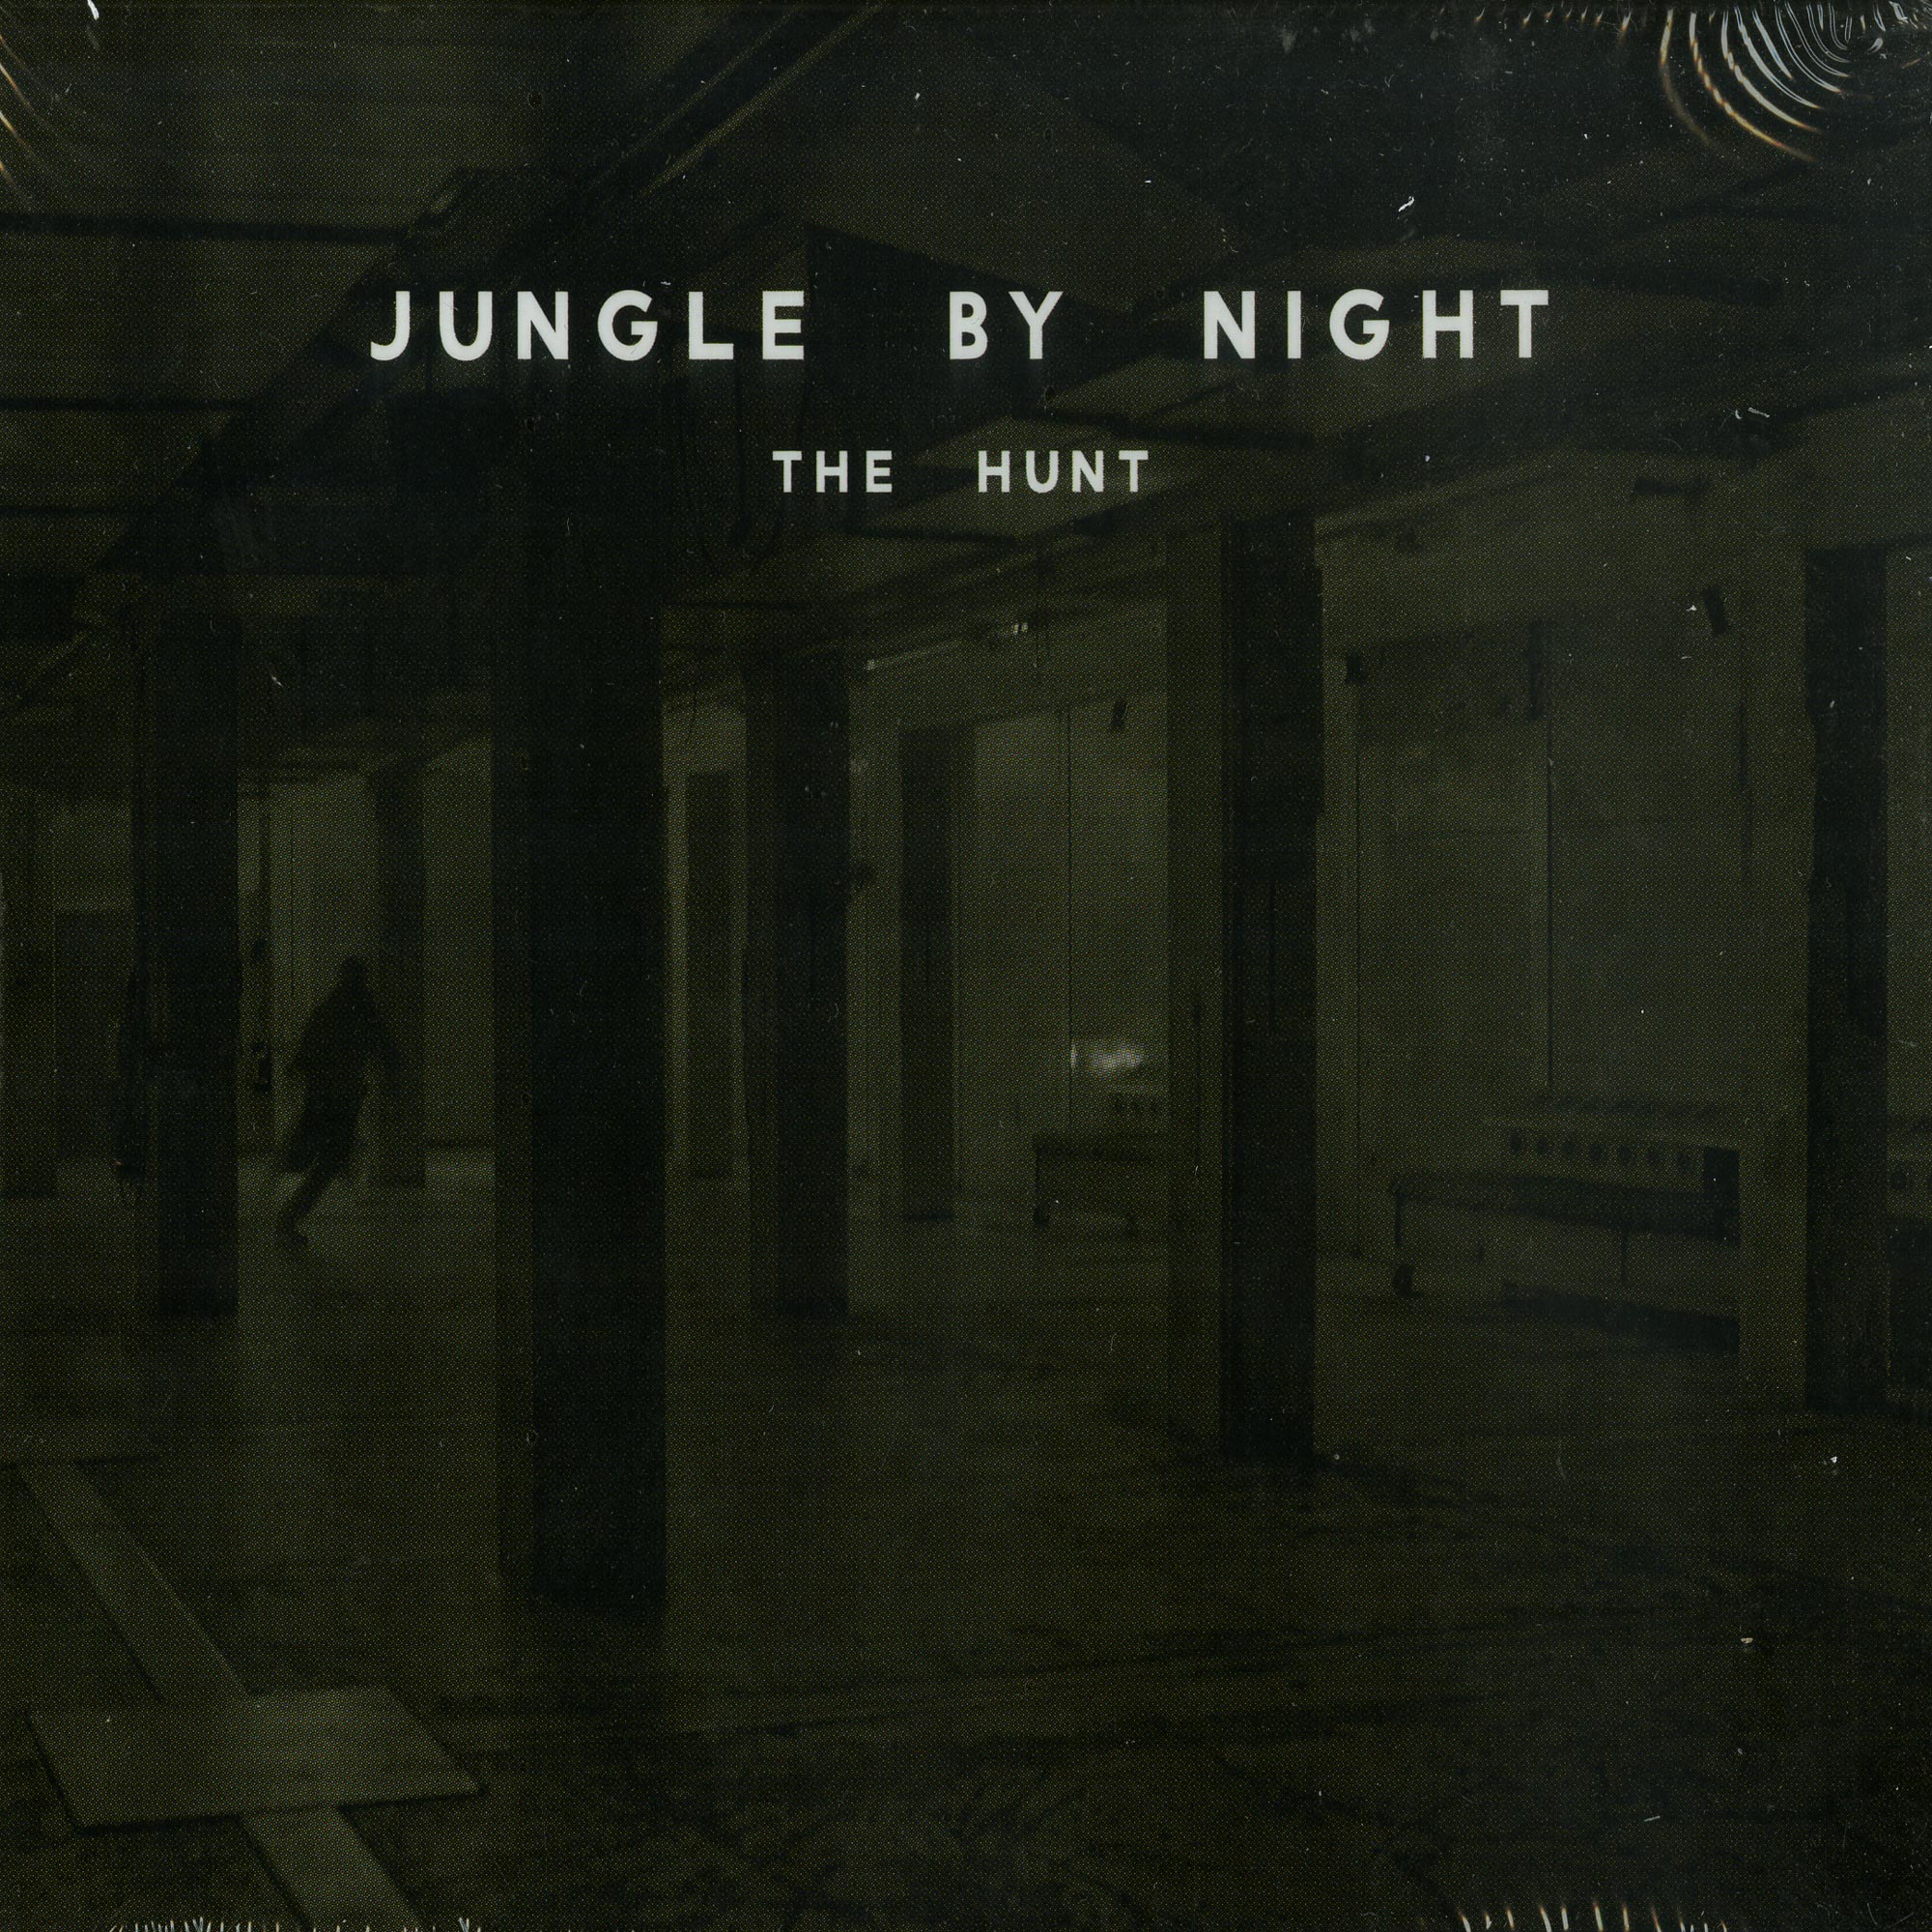 The Hunt - JUNGLE BY NIGHT